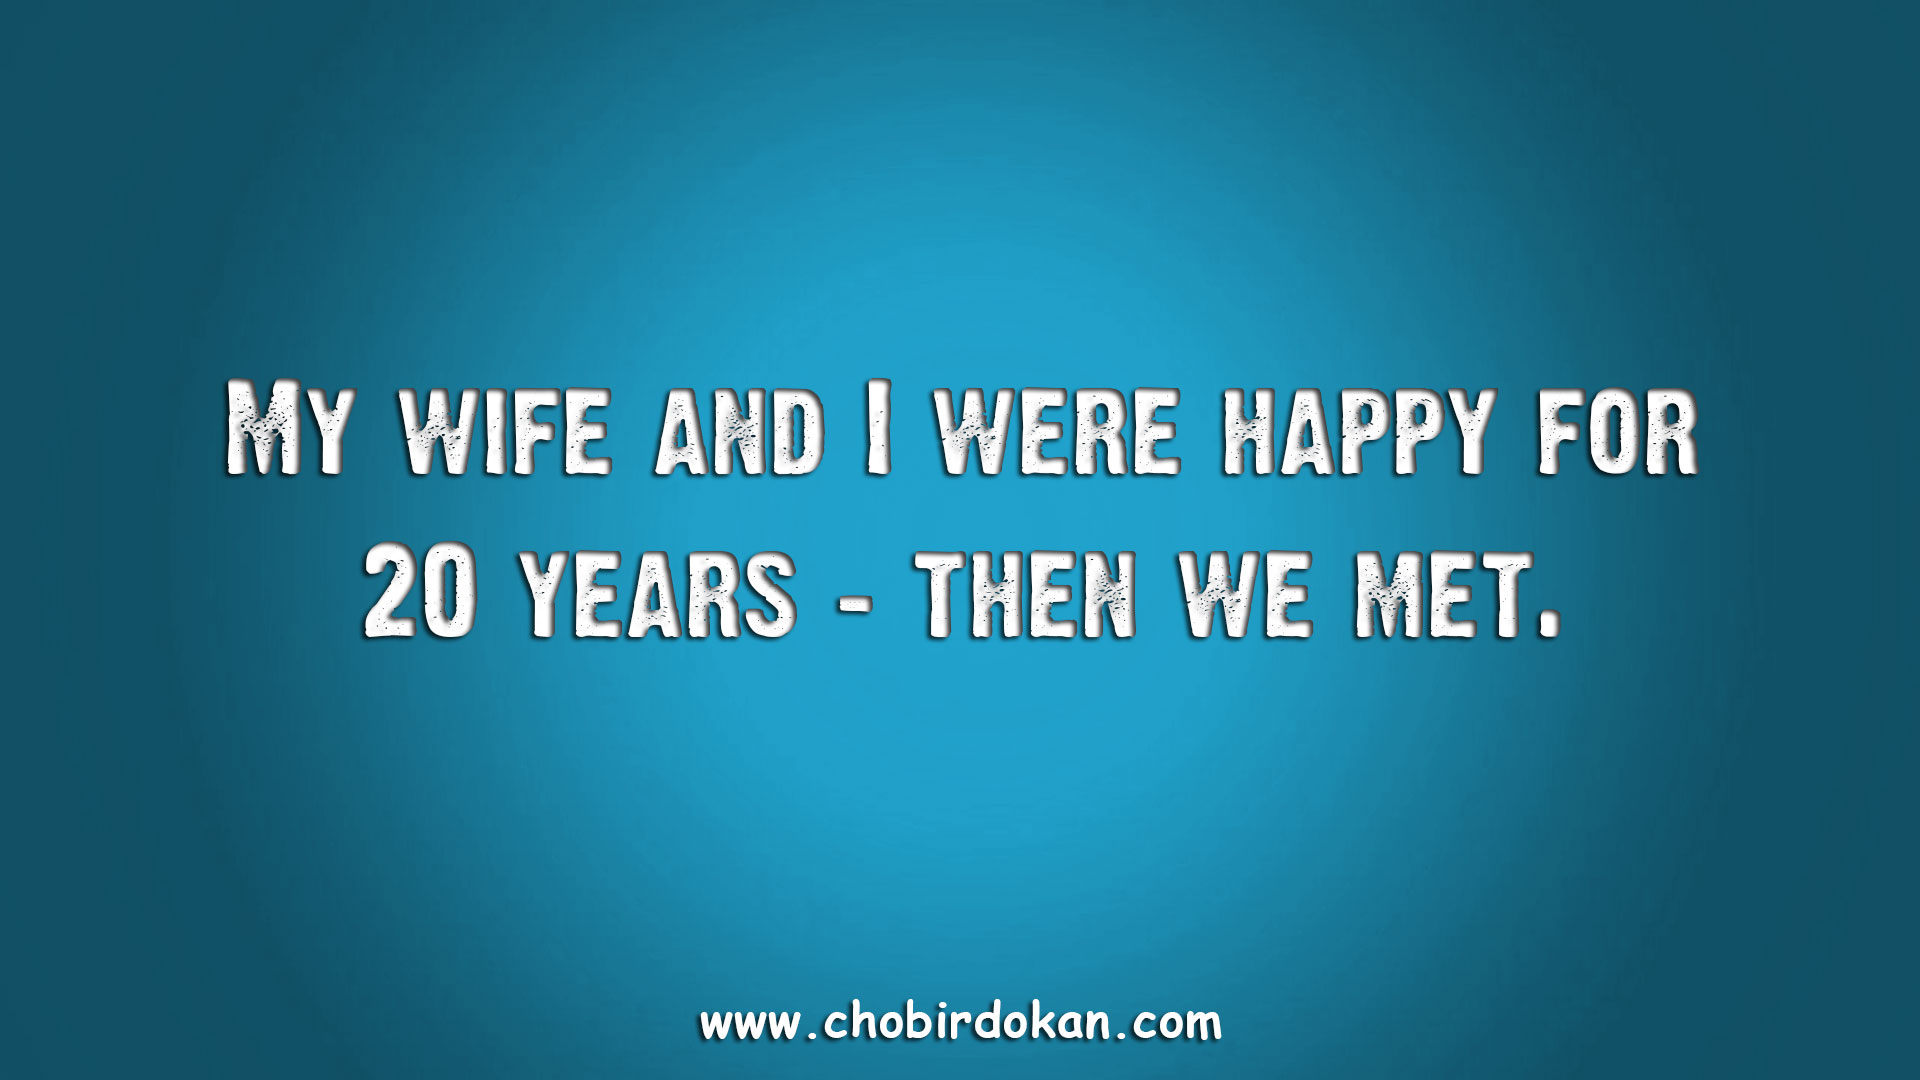 Best Husband Quotes From Wife  www.imgkid.com  The Image